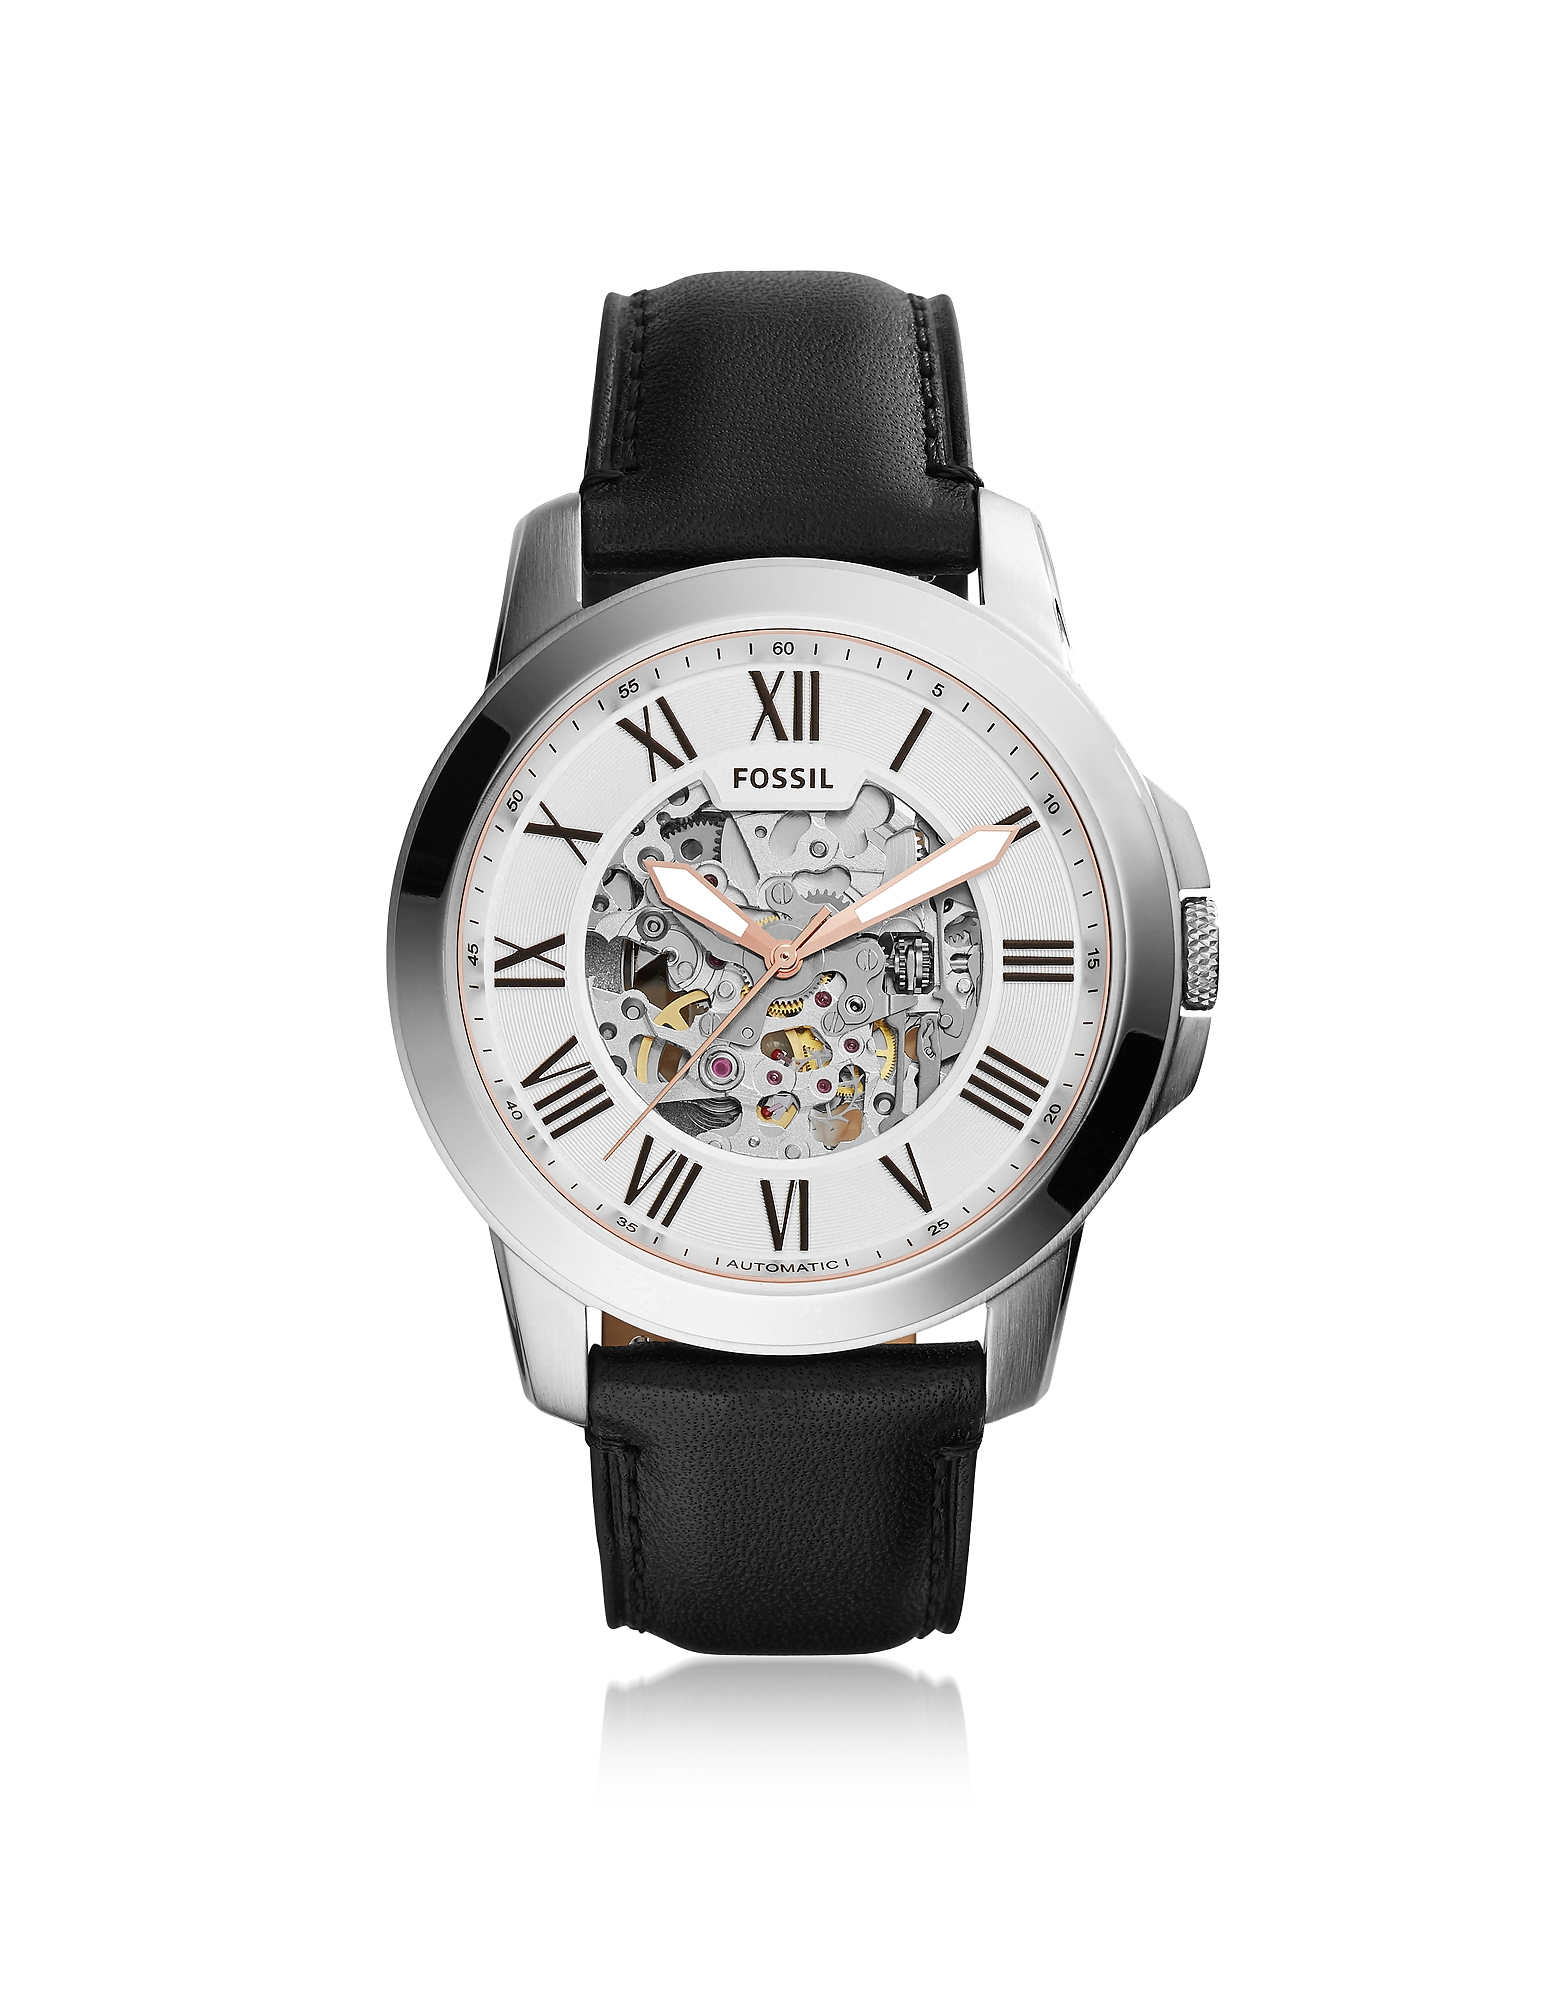 Fossil Men's Watches, Grant Automatic Black Leather Men's Watch